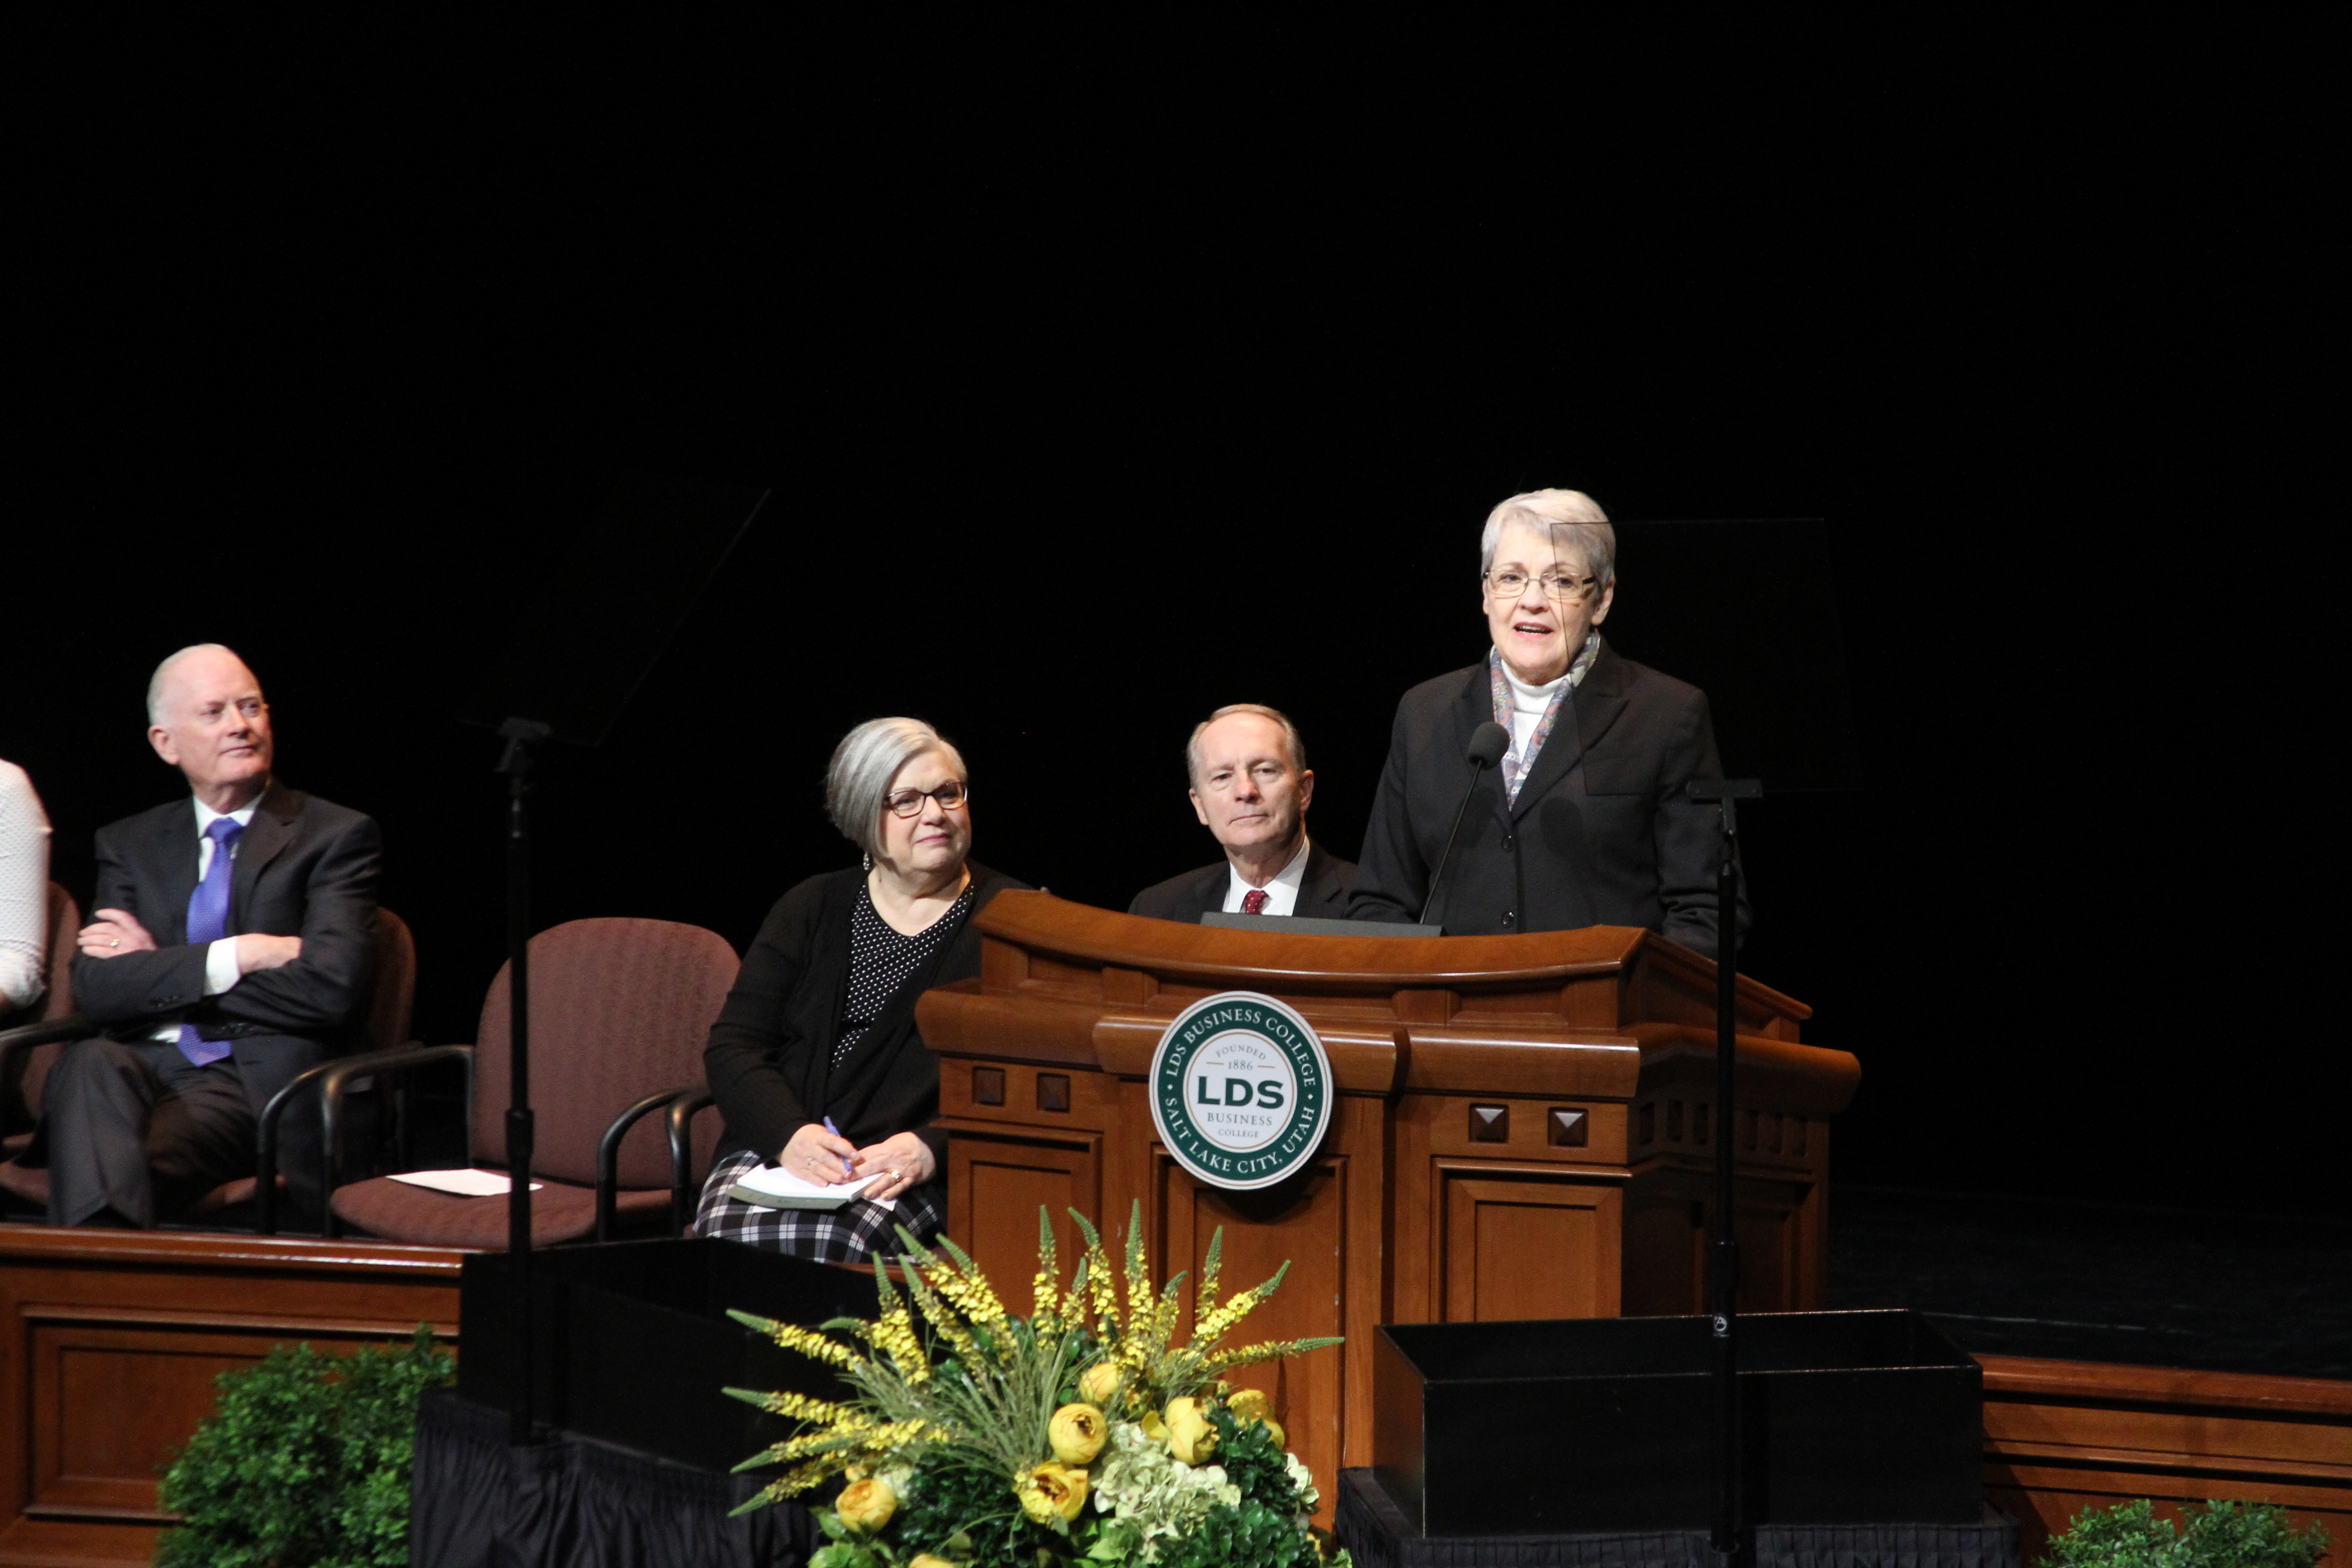 Sister Sue Clark speaks during her LDS Business College devotional address in the Conference Center Theater on Feb. 19, 2019.